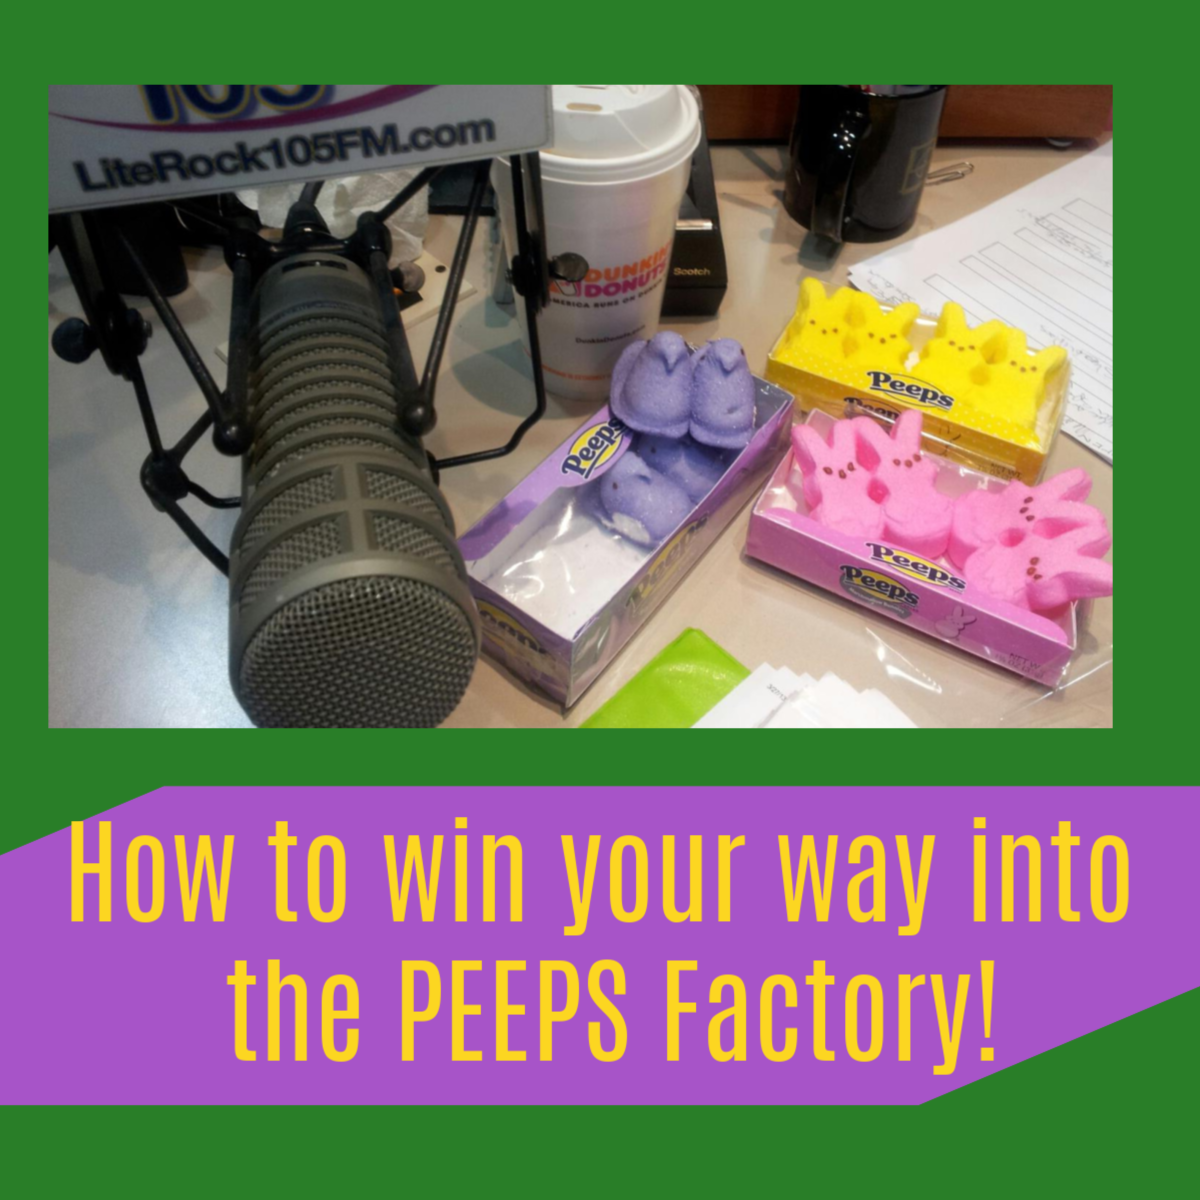 Move over Willa Wonka! You can now win your way into the Peeps Factory!